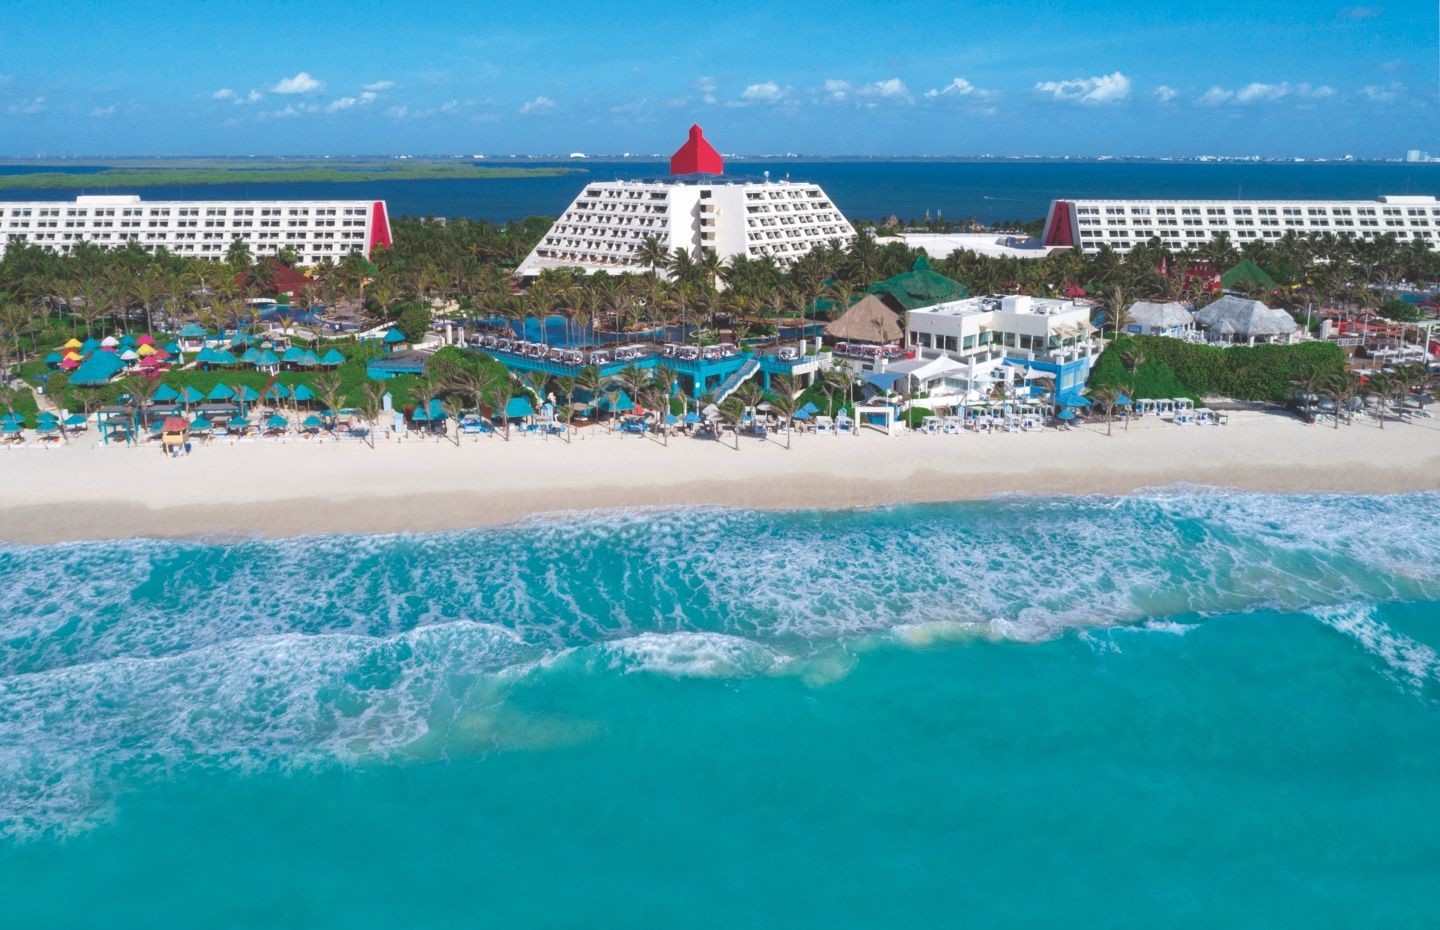 All Inclusive Hotels in Mexico · Oasis Hotels & Resorts on cabo san lucas map, cancun cruise port map, hard rock cancun map, riu cancun map, royal solaris cancun map, rochester hotel map, playa del carmen map, cancun beach map, westin cancun map, punta cana map, royal sands cancun map, mexico hotel map, san francisco map, live aqua cancun location map, villa del palmar cancun map, las vegas hotel map, california hotel map, caribbean hotel map, cancun tourist map,